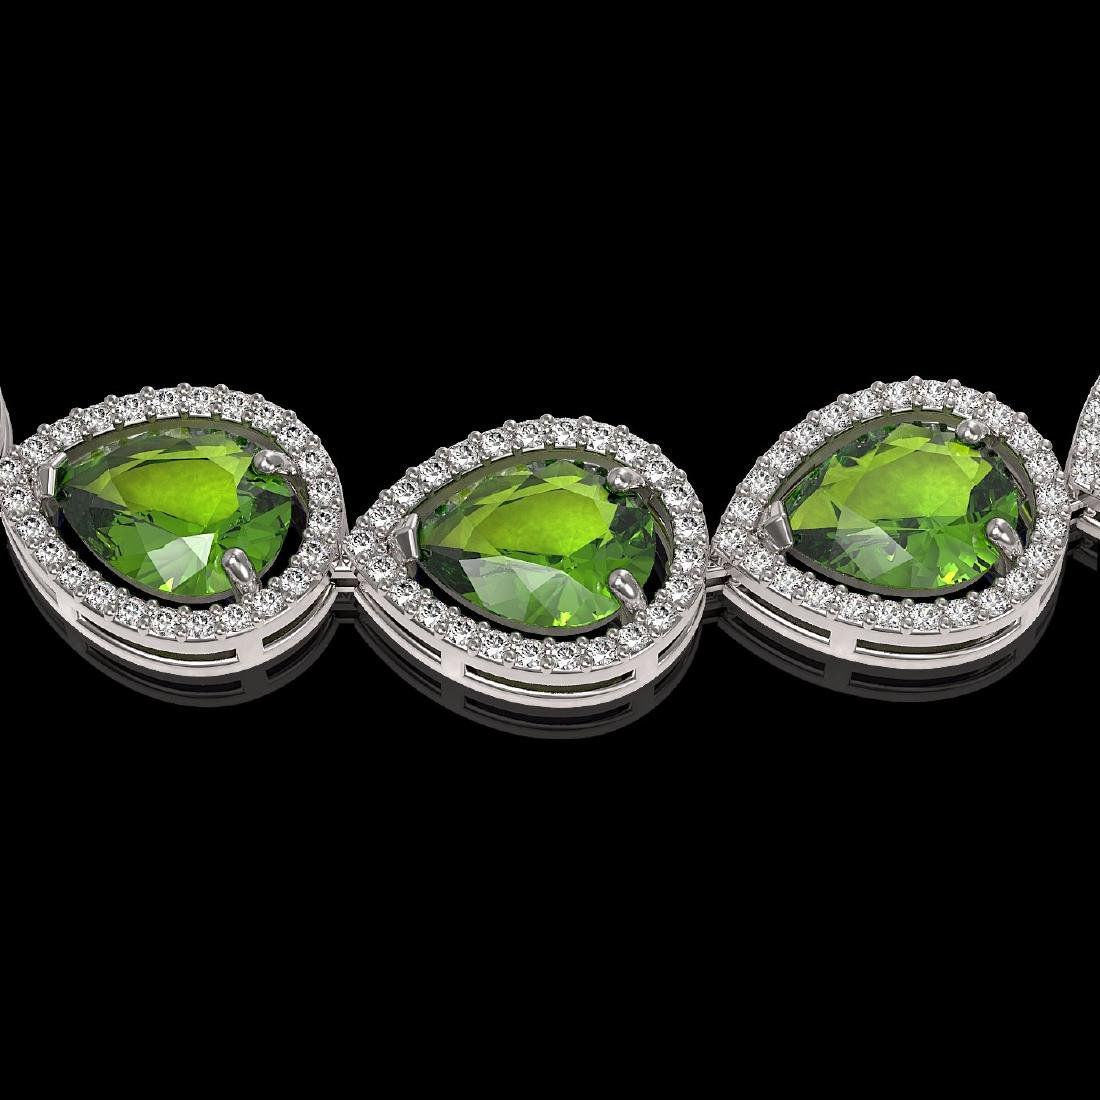 33.6 CTW Peridot & Diamond Halo Necklace 10K White Gold - 3